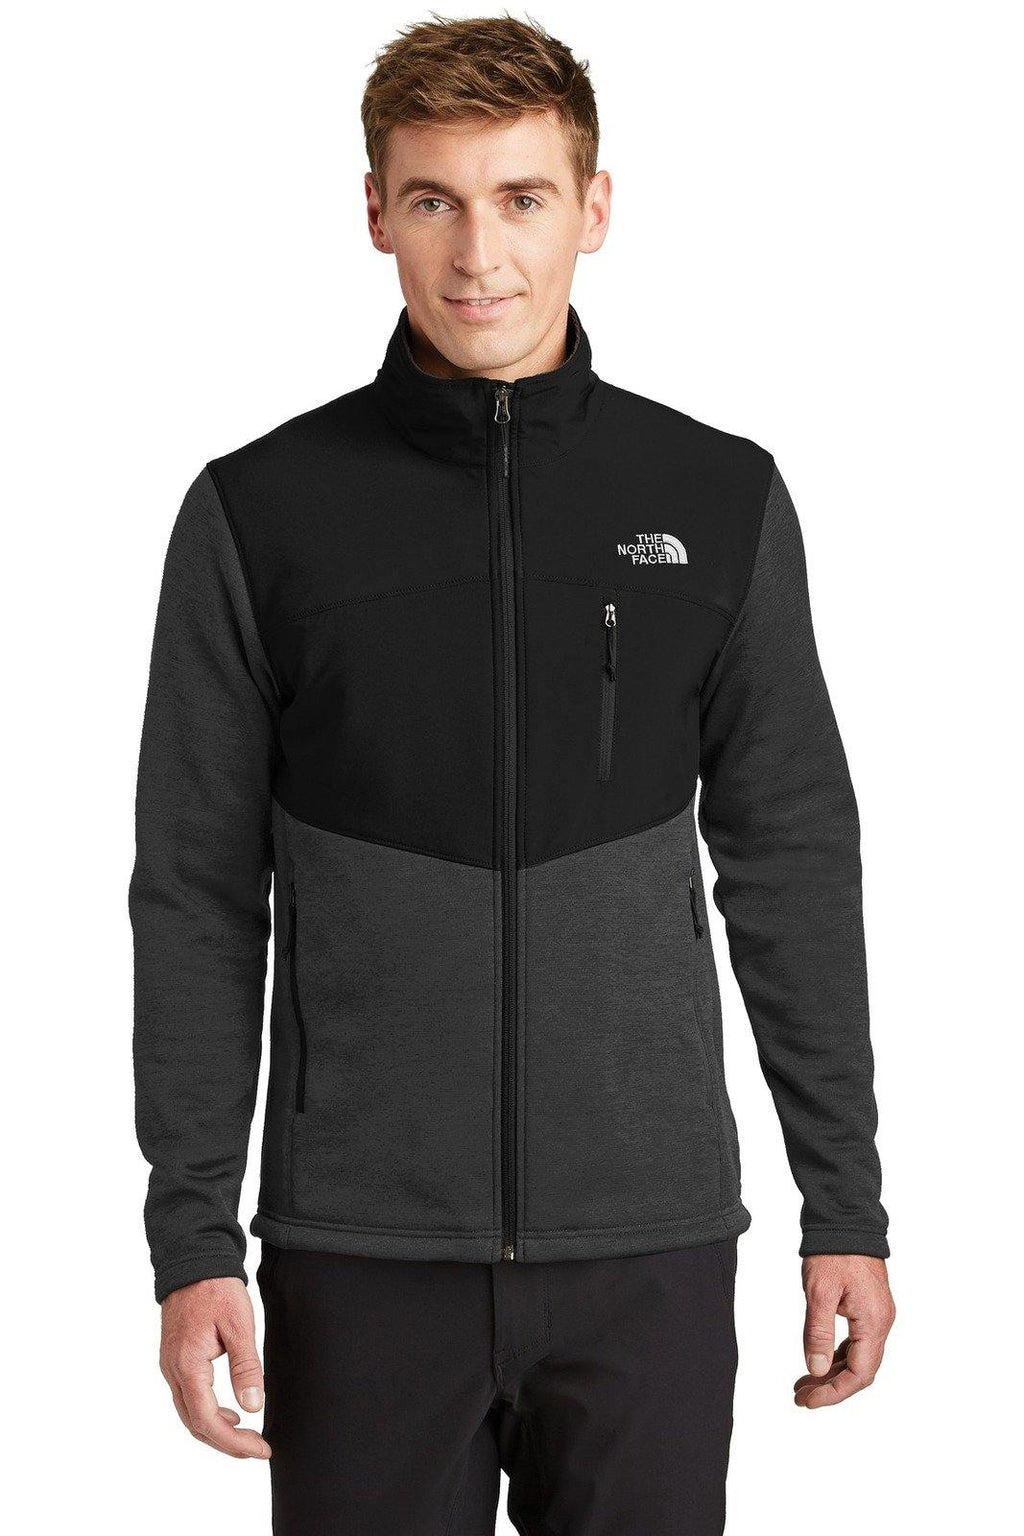 The North Face Far North Fleece Jacket - New Age Promotions